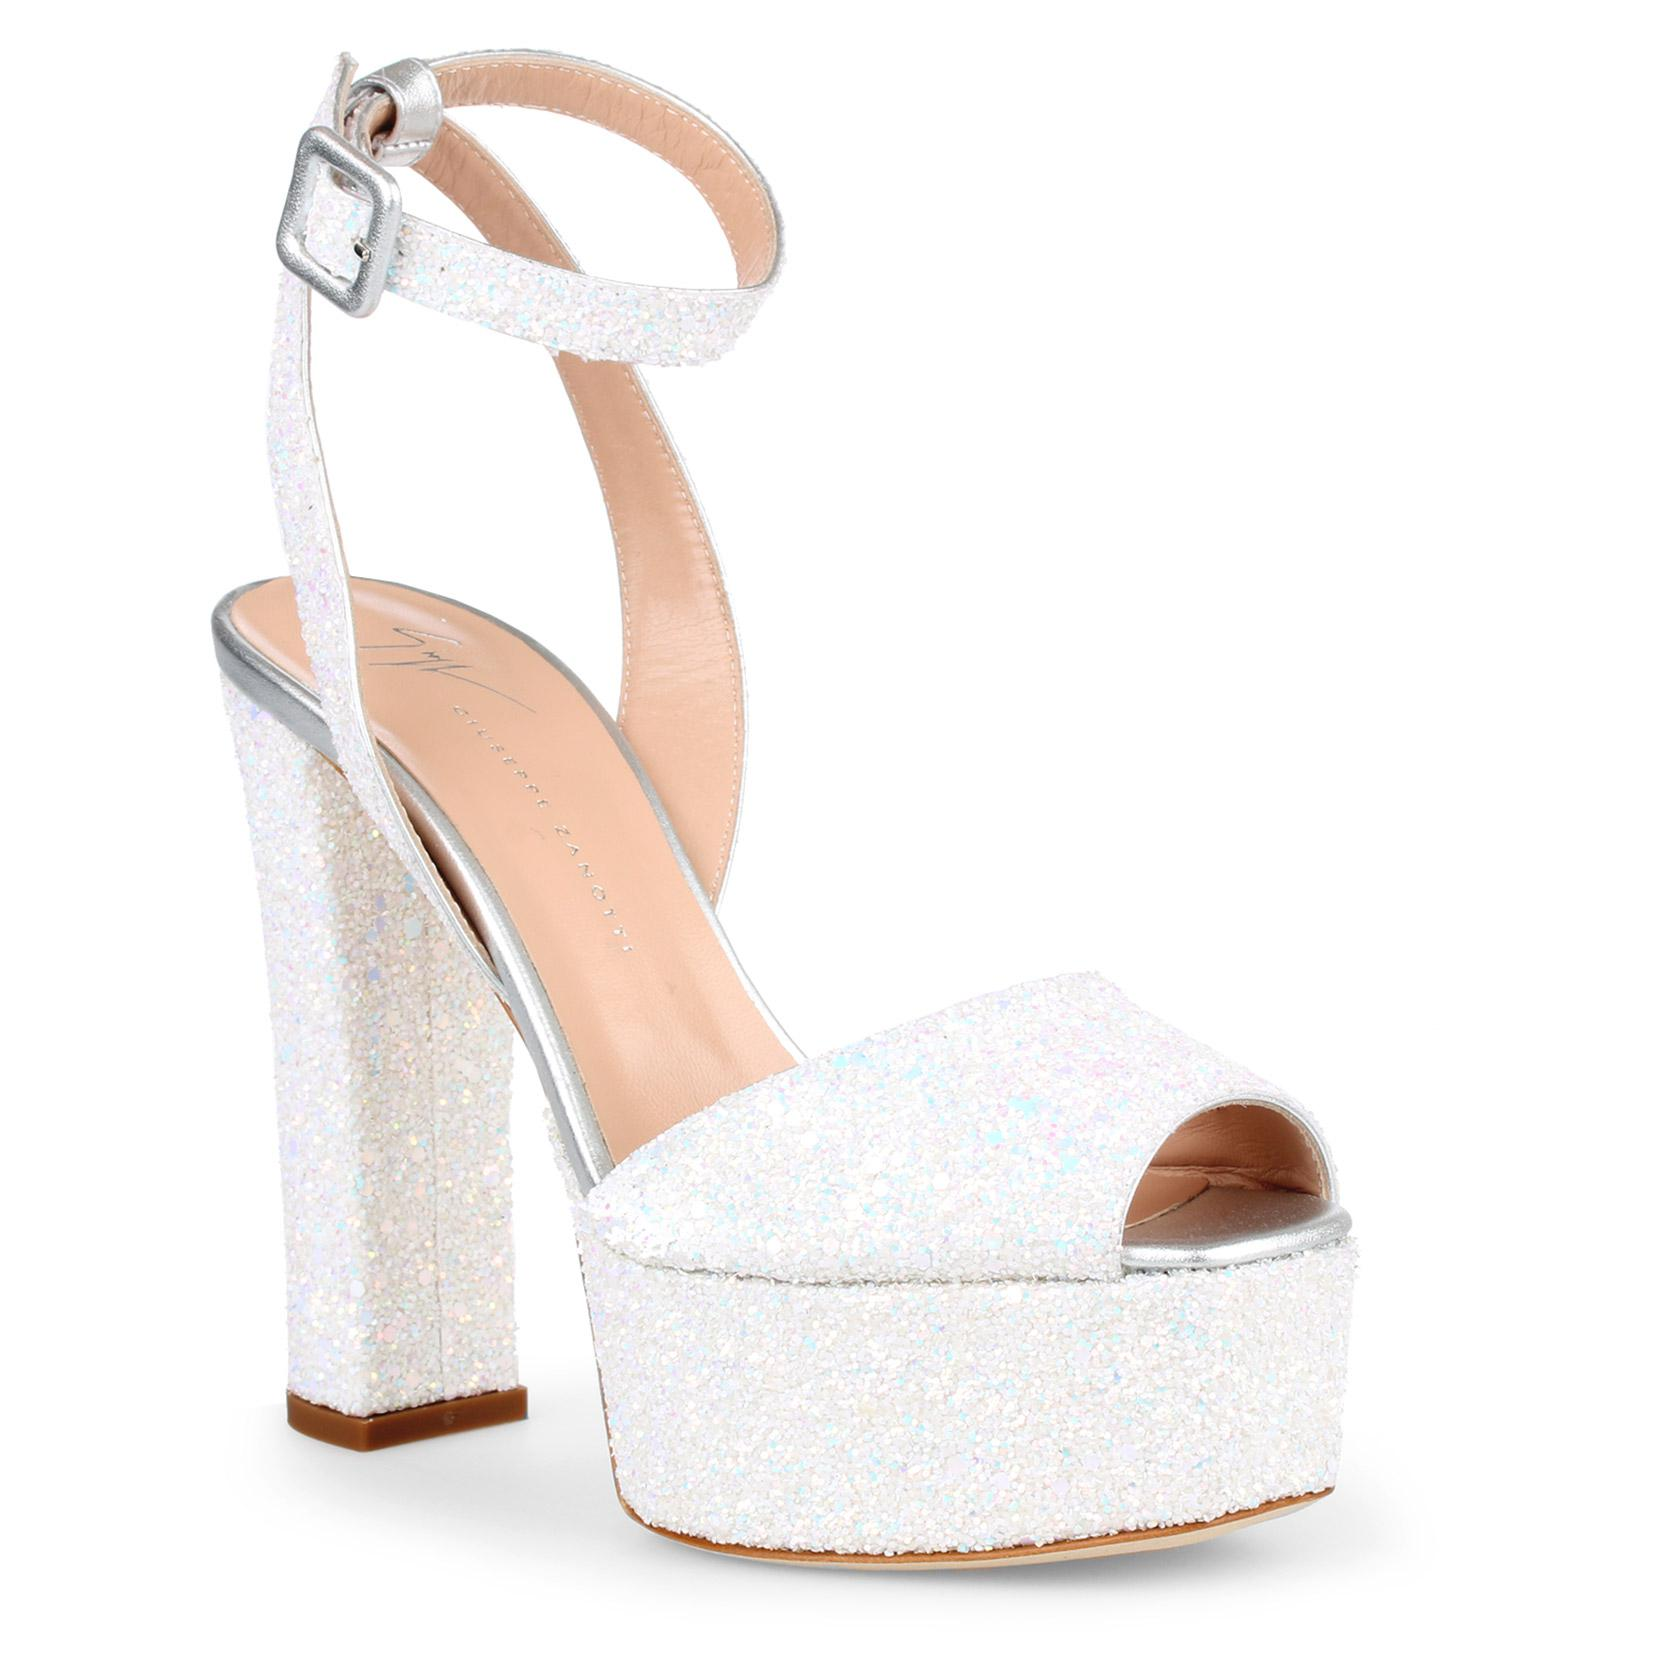 cca4c44c370 Lyst - Giuseppe Zanotti Betty White Glitter Sandals in White